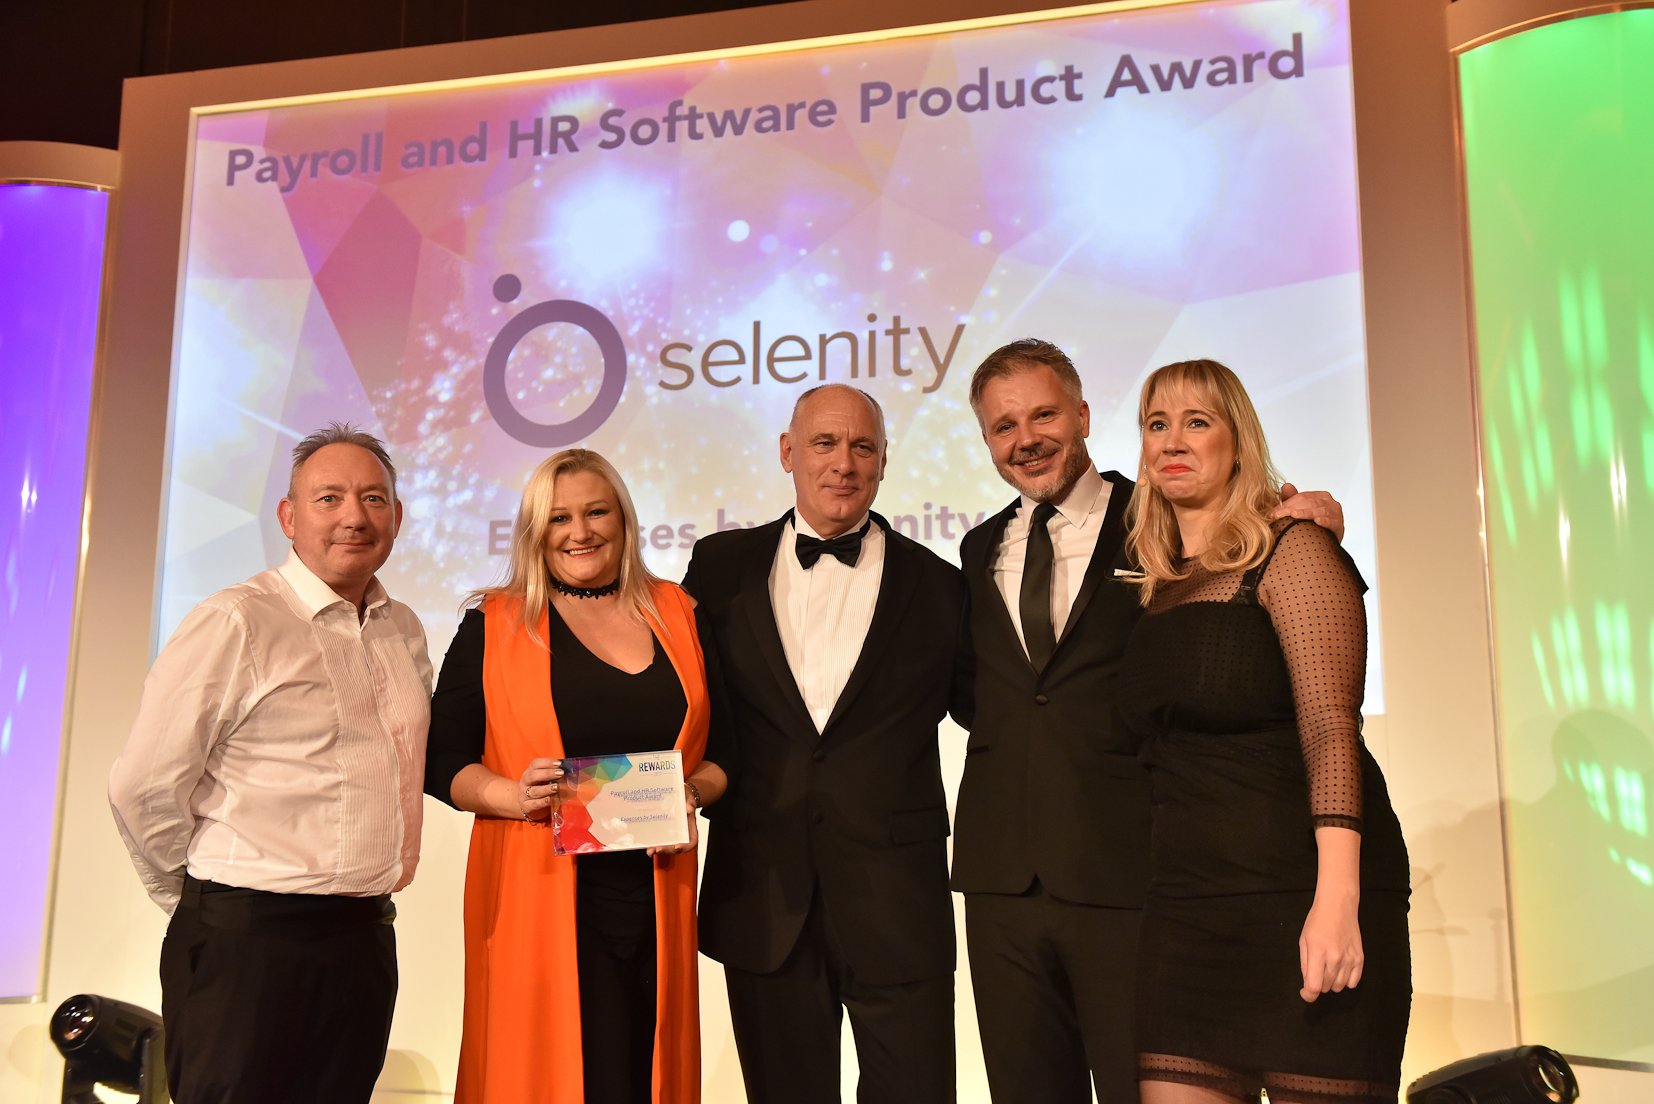 Winners 2017 - 11 Payroll and HR Software Product Award